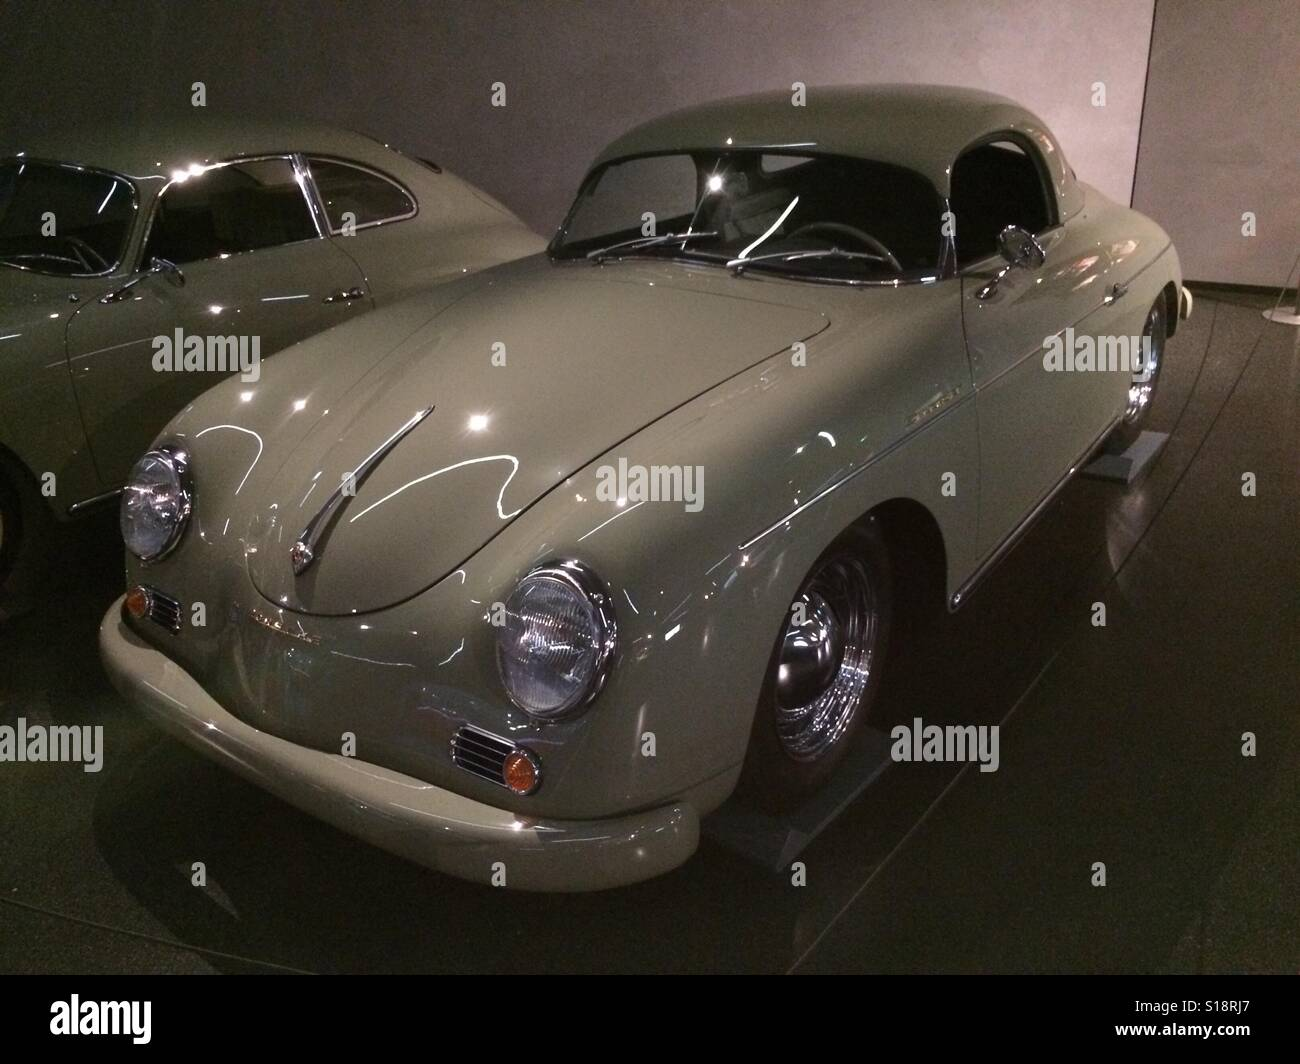 Porsche car on display in Germany. - Stock Image